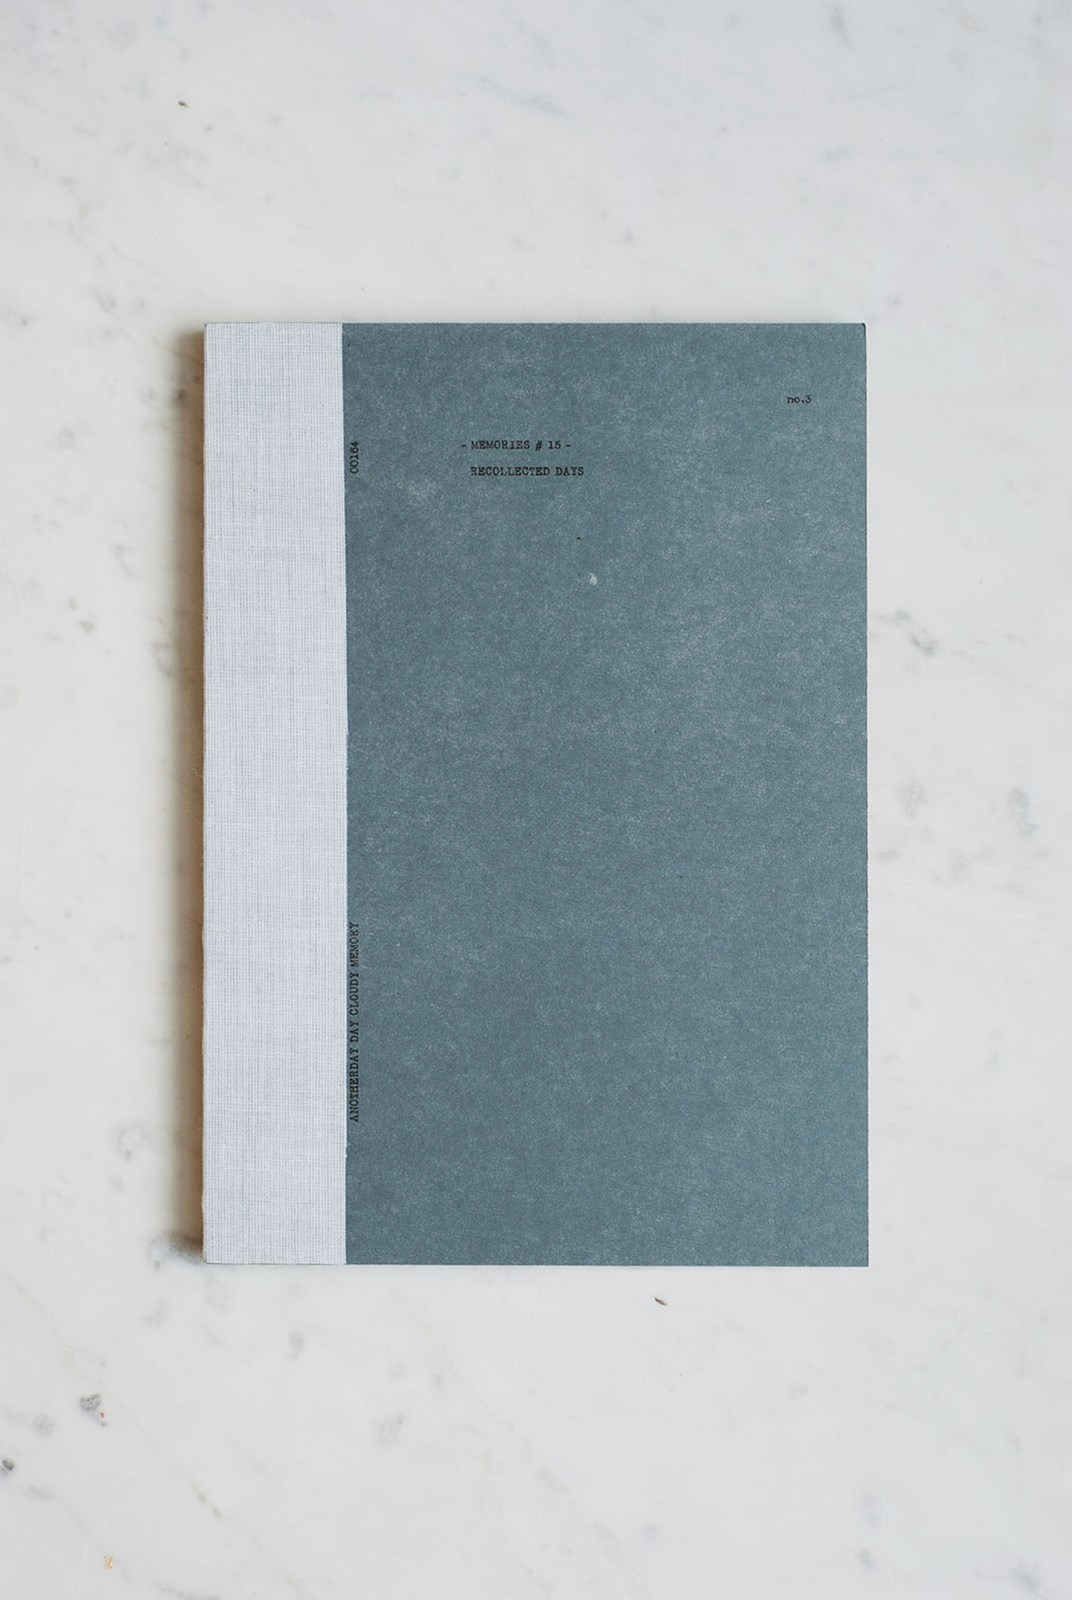 O-Check Design Graphics - Utility Notebook - Plain - Large - Recycled Pages - Blue